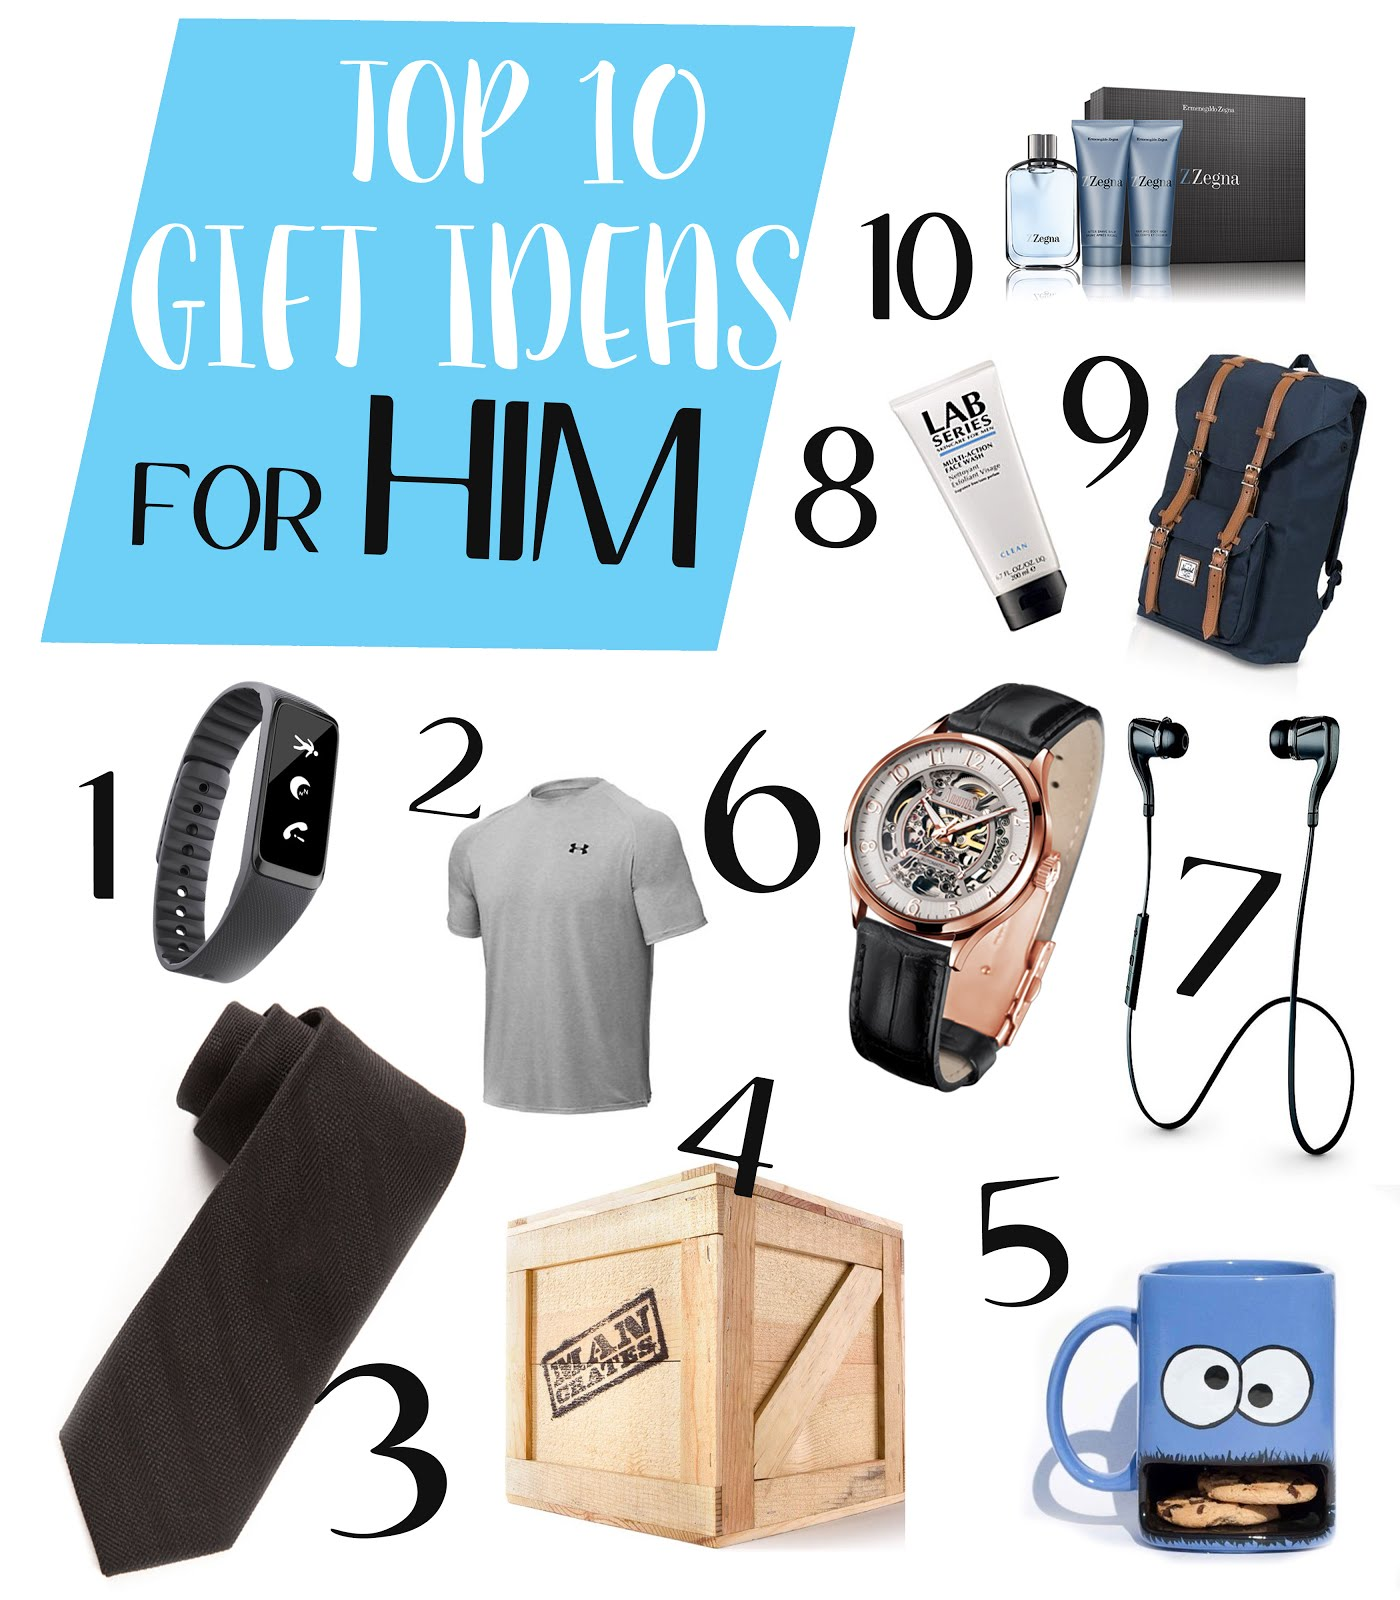 FOR HIM: 10 GIFT IDEAS FOR CHRISTMAS